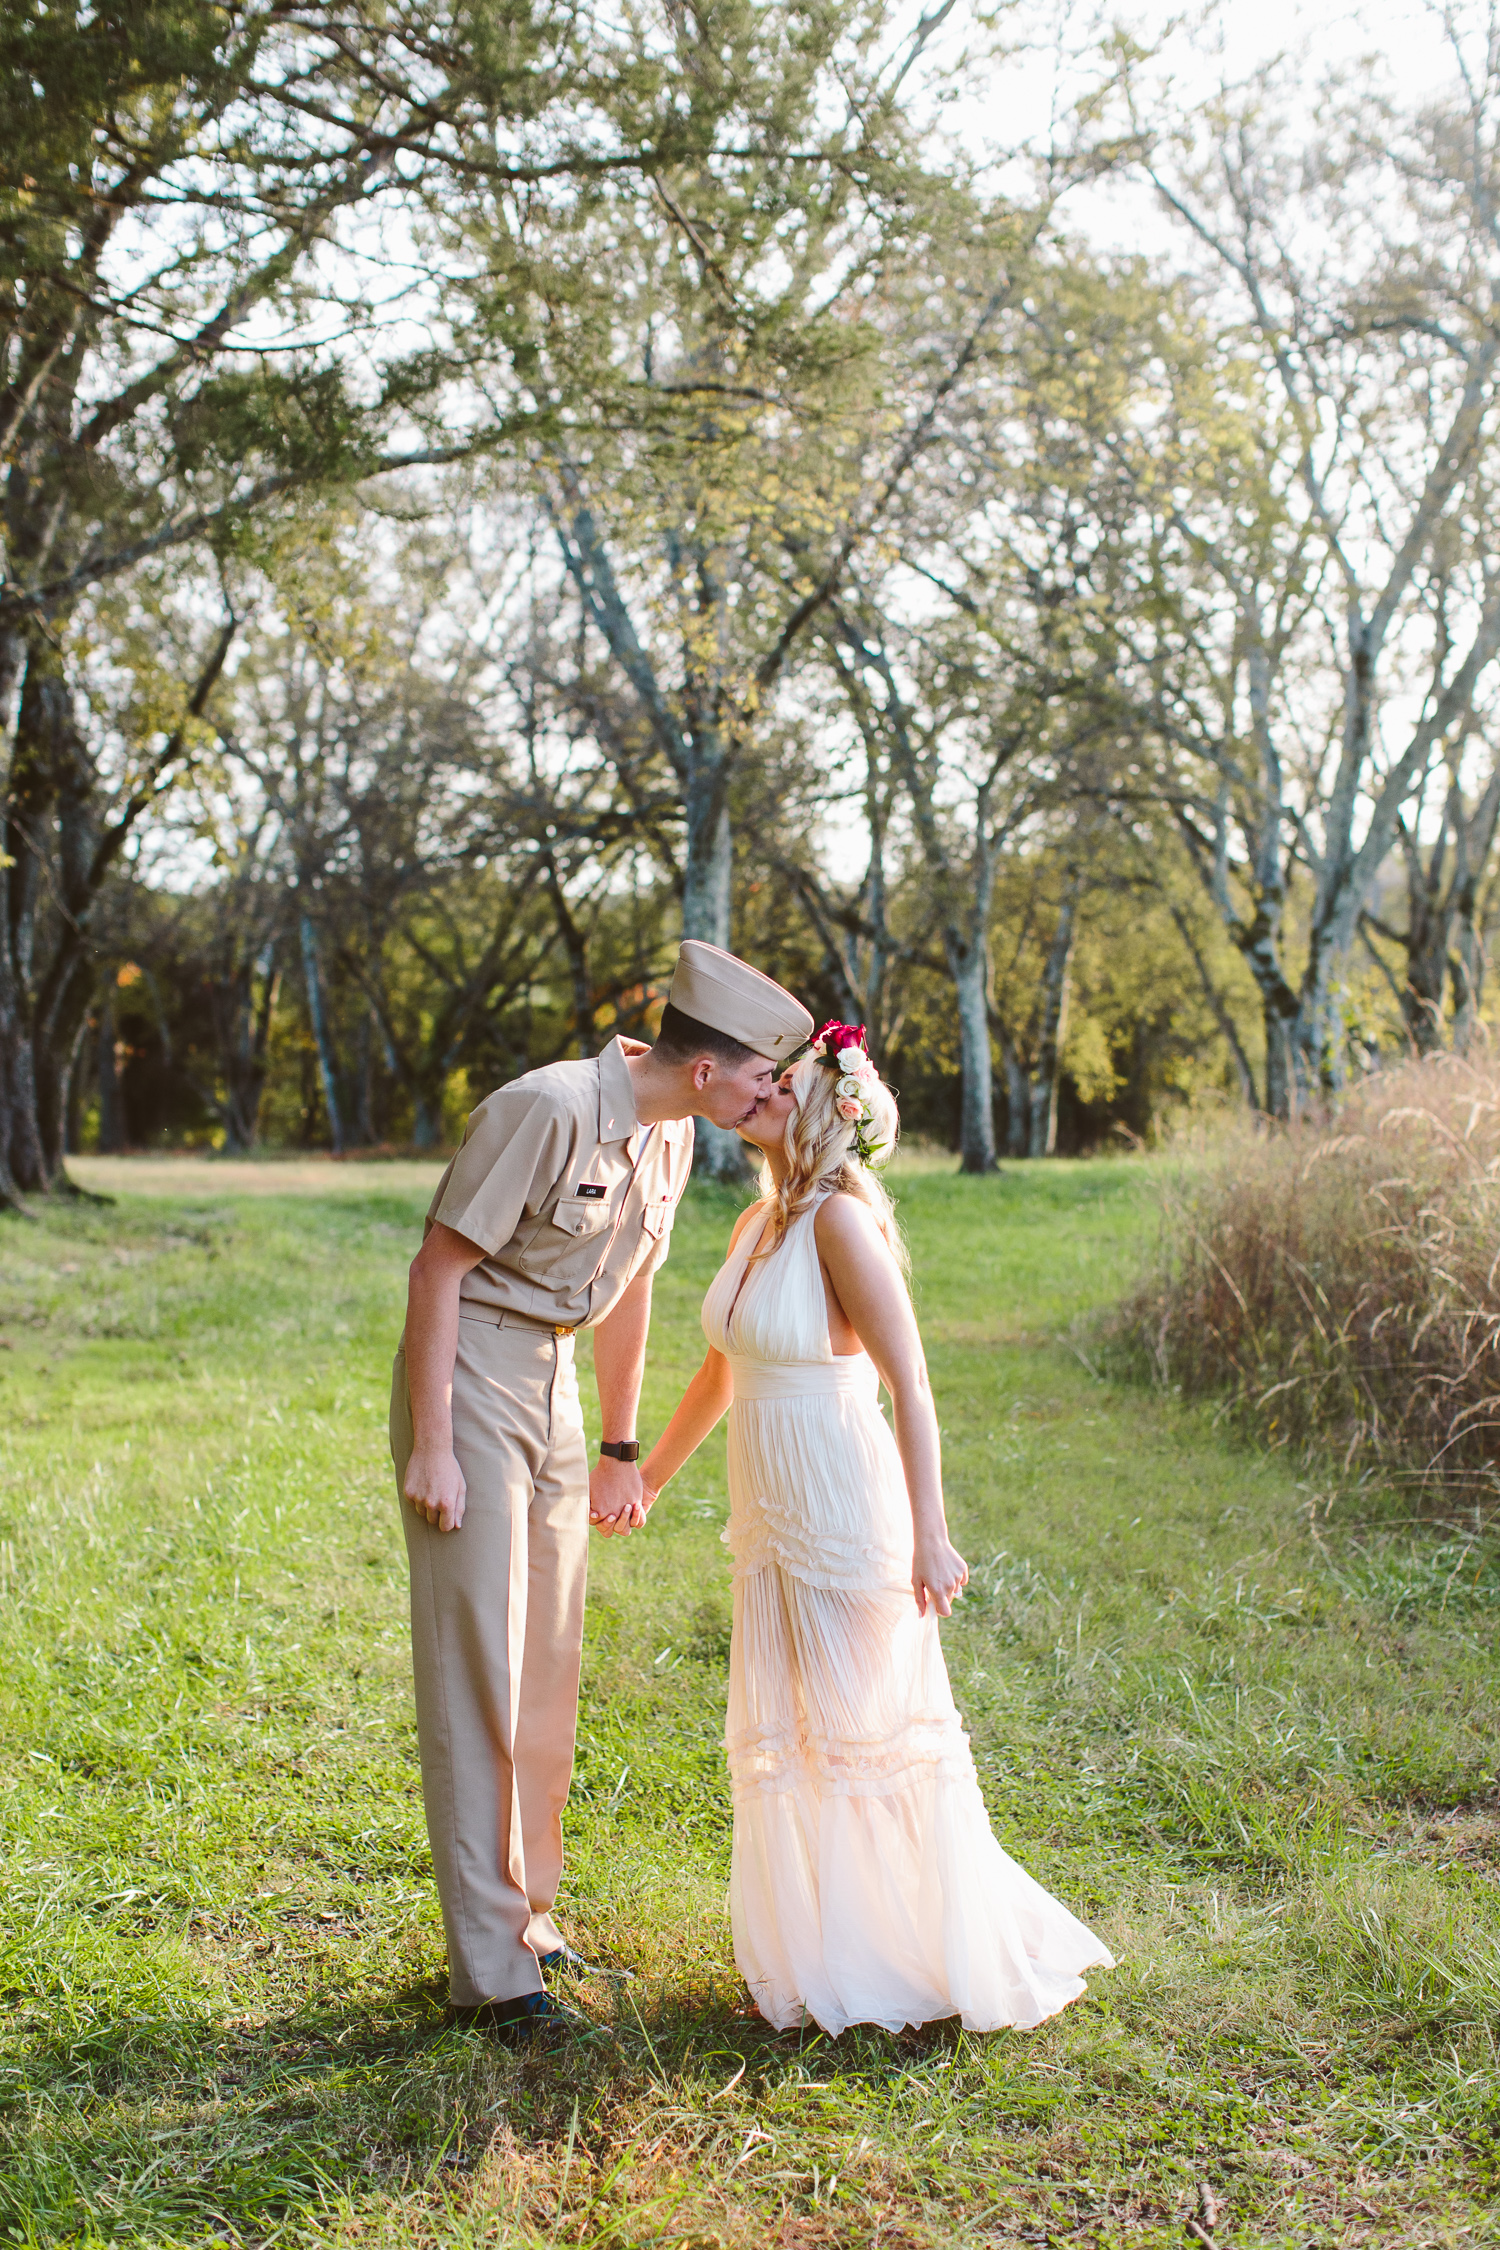 Military Photoshoot in Uniform // Navy Wife // Military Couple Engagement Photos // Suzy Collins Photography // Knoxville Photographer